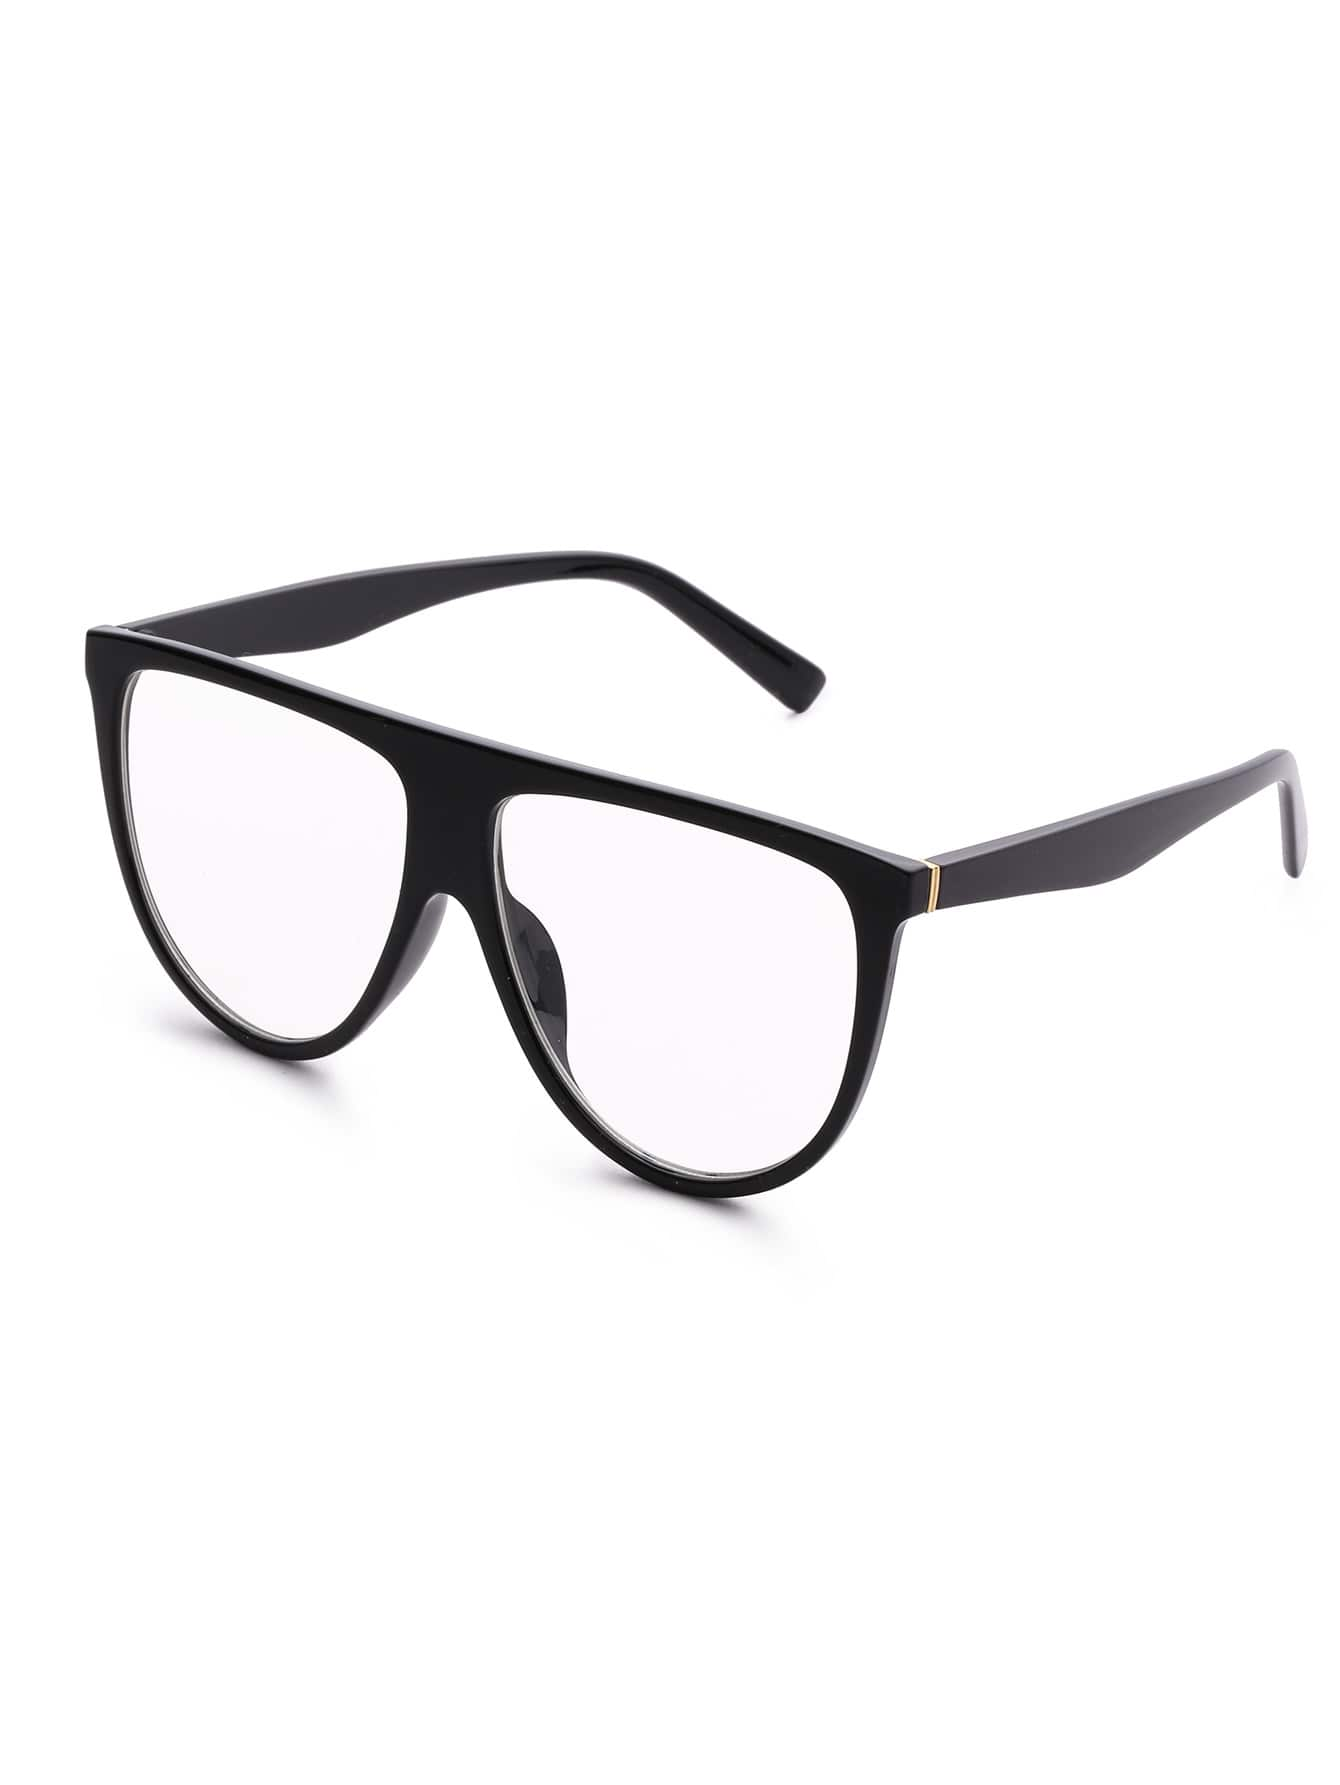 Flat Top Clear Lens Oversized Glasses sunglass170629301